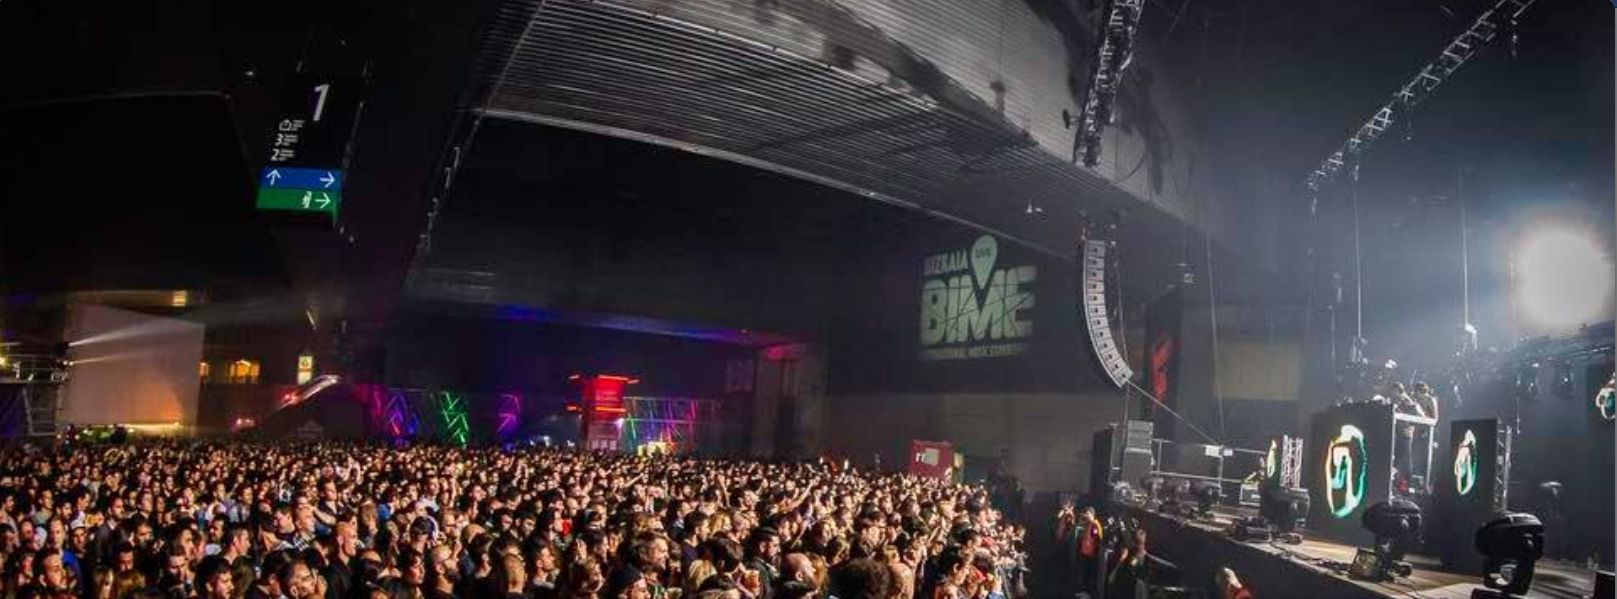 BIME – Spain's foremost Autumn music festival and industry conference – expands 2019 roster